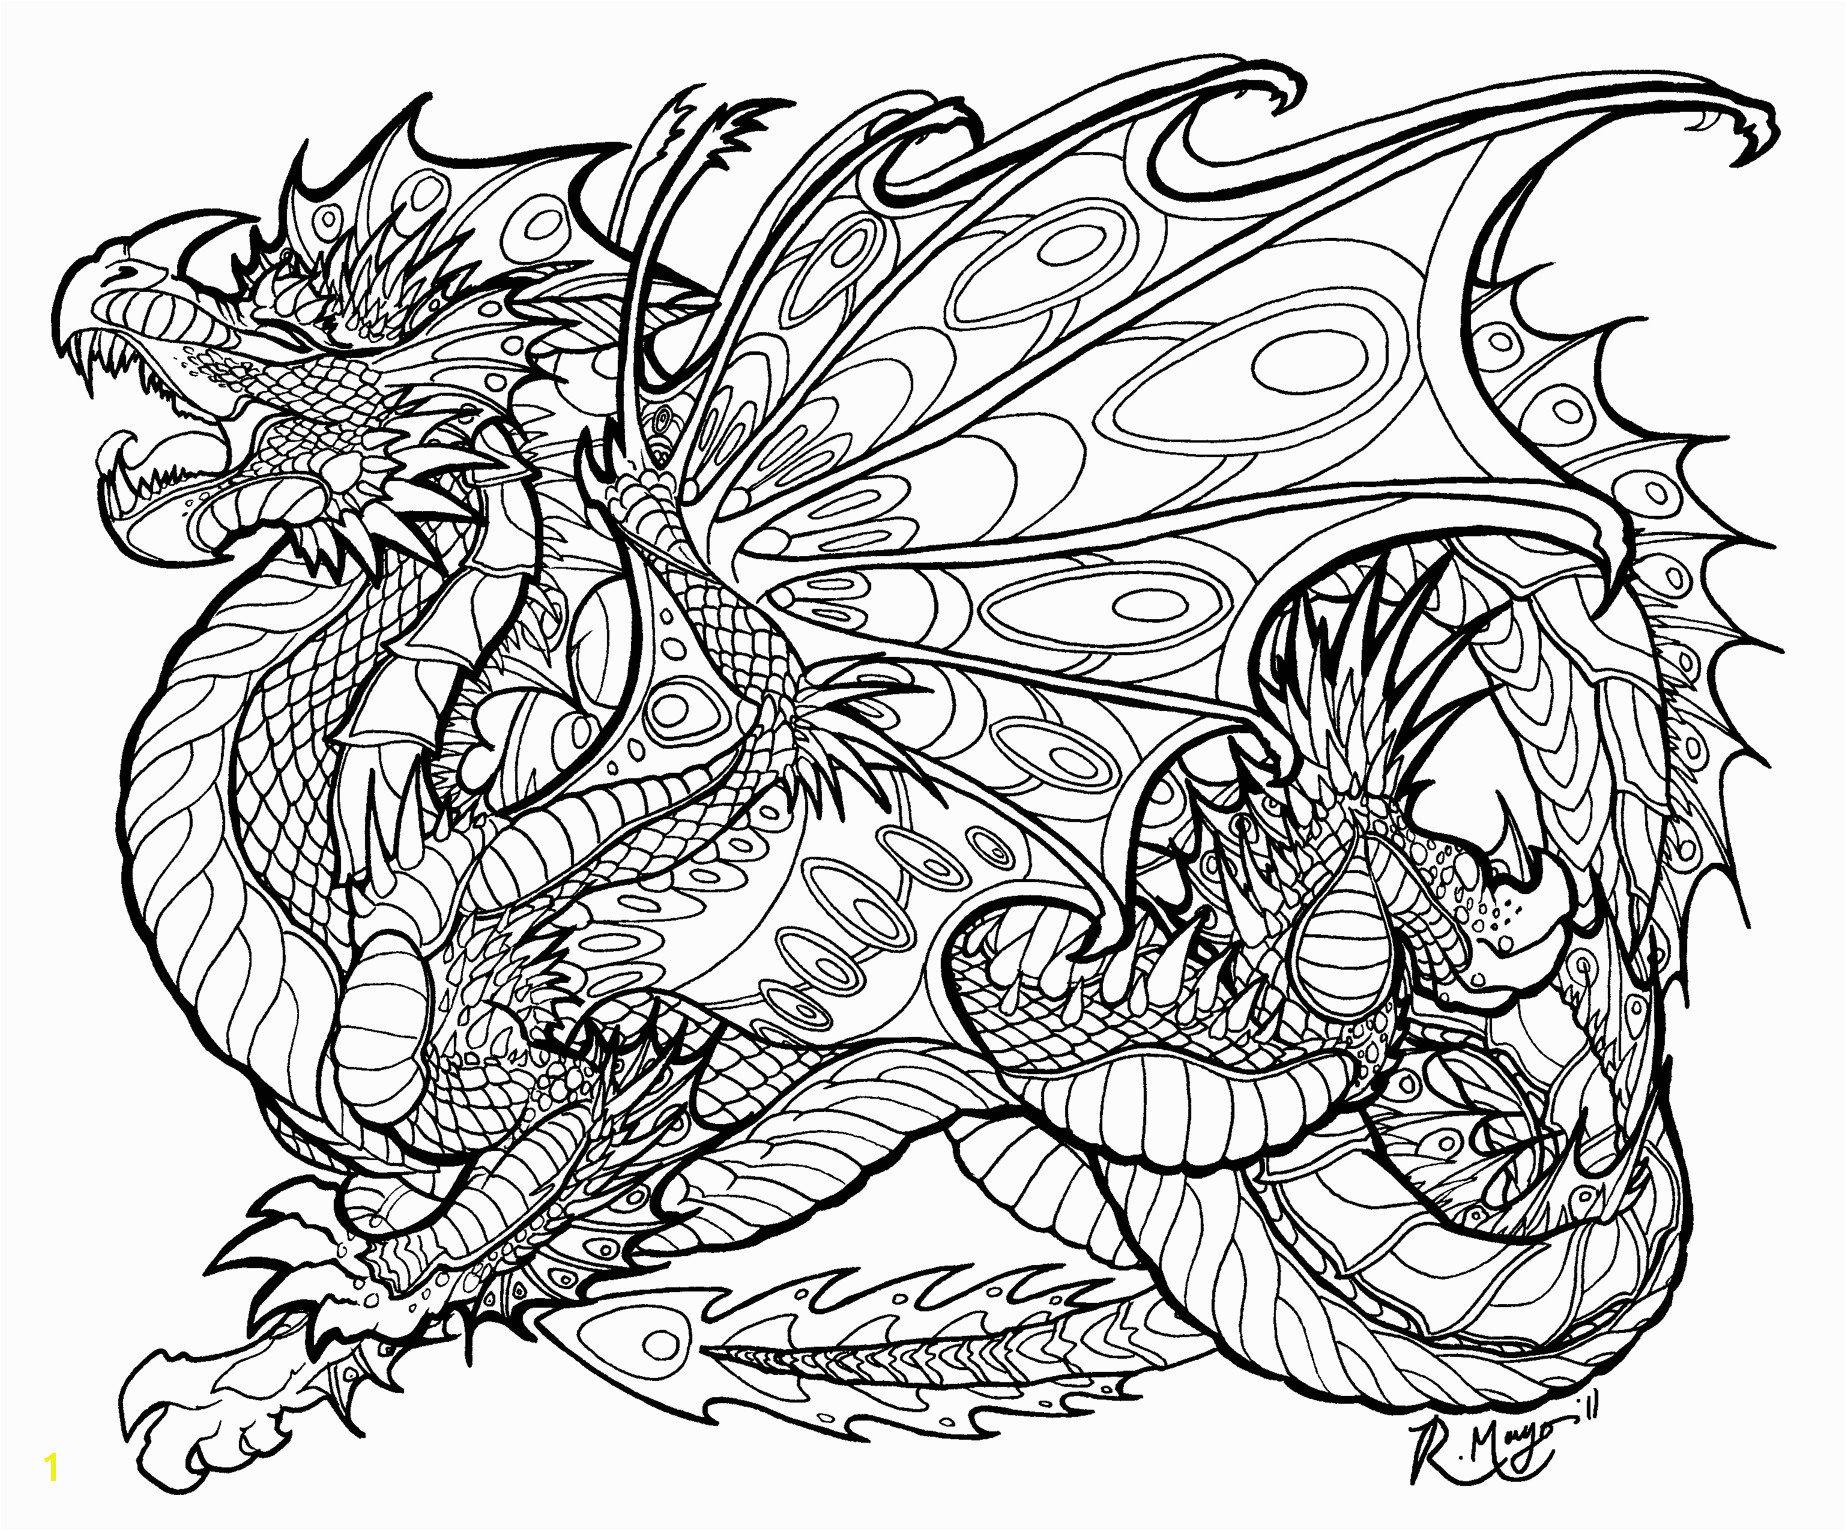 Unsurpassed Evil Dragon Coloring Pages For Adults To Print Kids